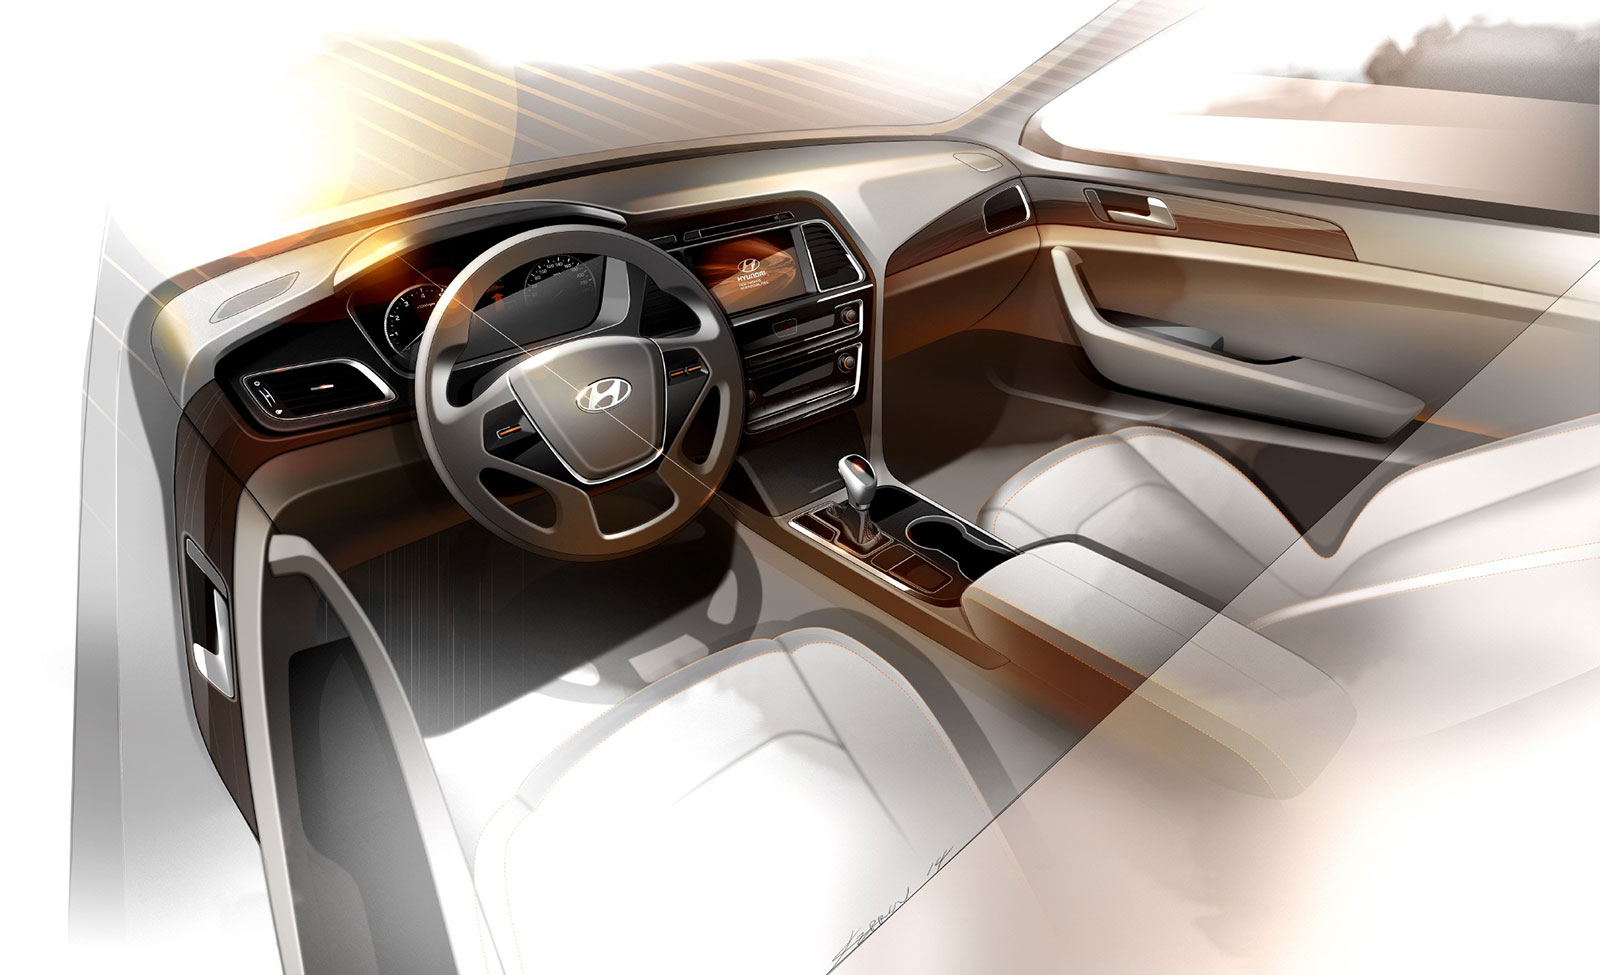 2015 Hyundai Sonata - Interior Design Sketch